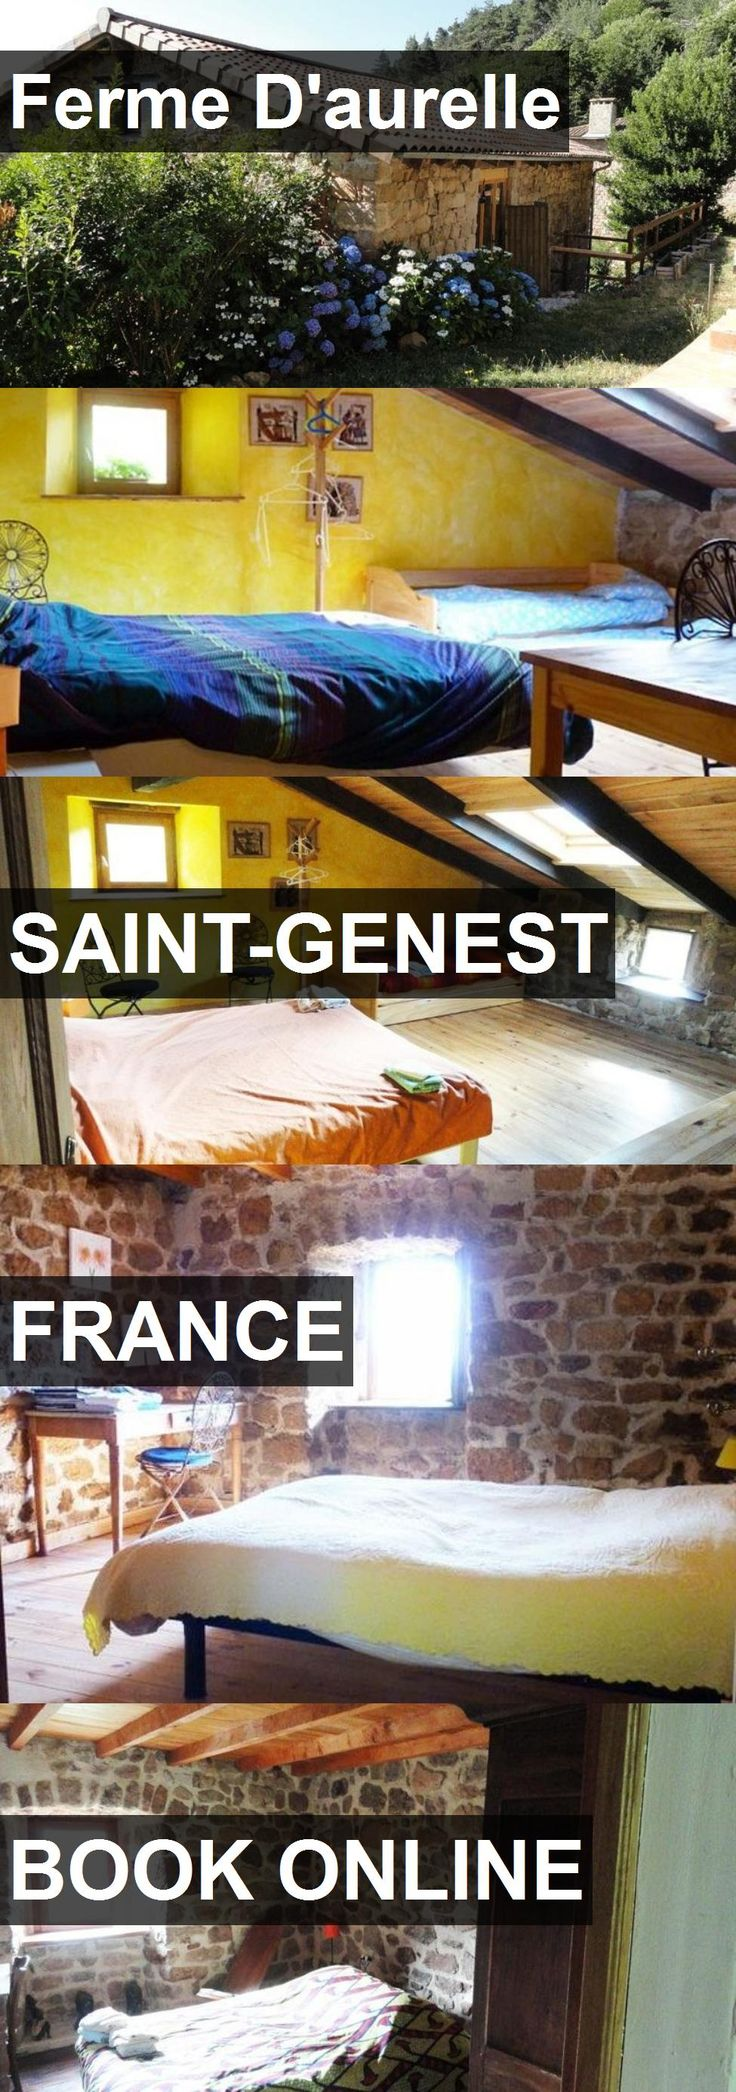 Hotel Ferme D'aurelle in Saint-Genest, France. For more information, photos, reviews and best prices please follow the link. #France #Saint-Genest #travel #vacation #hotel